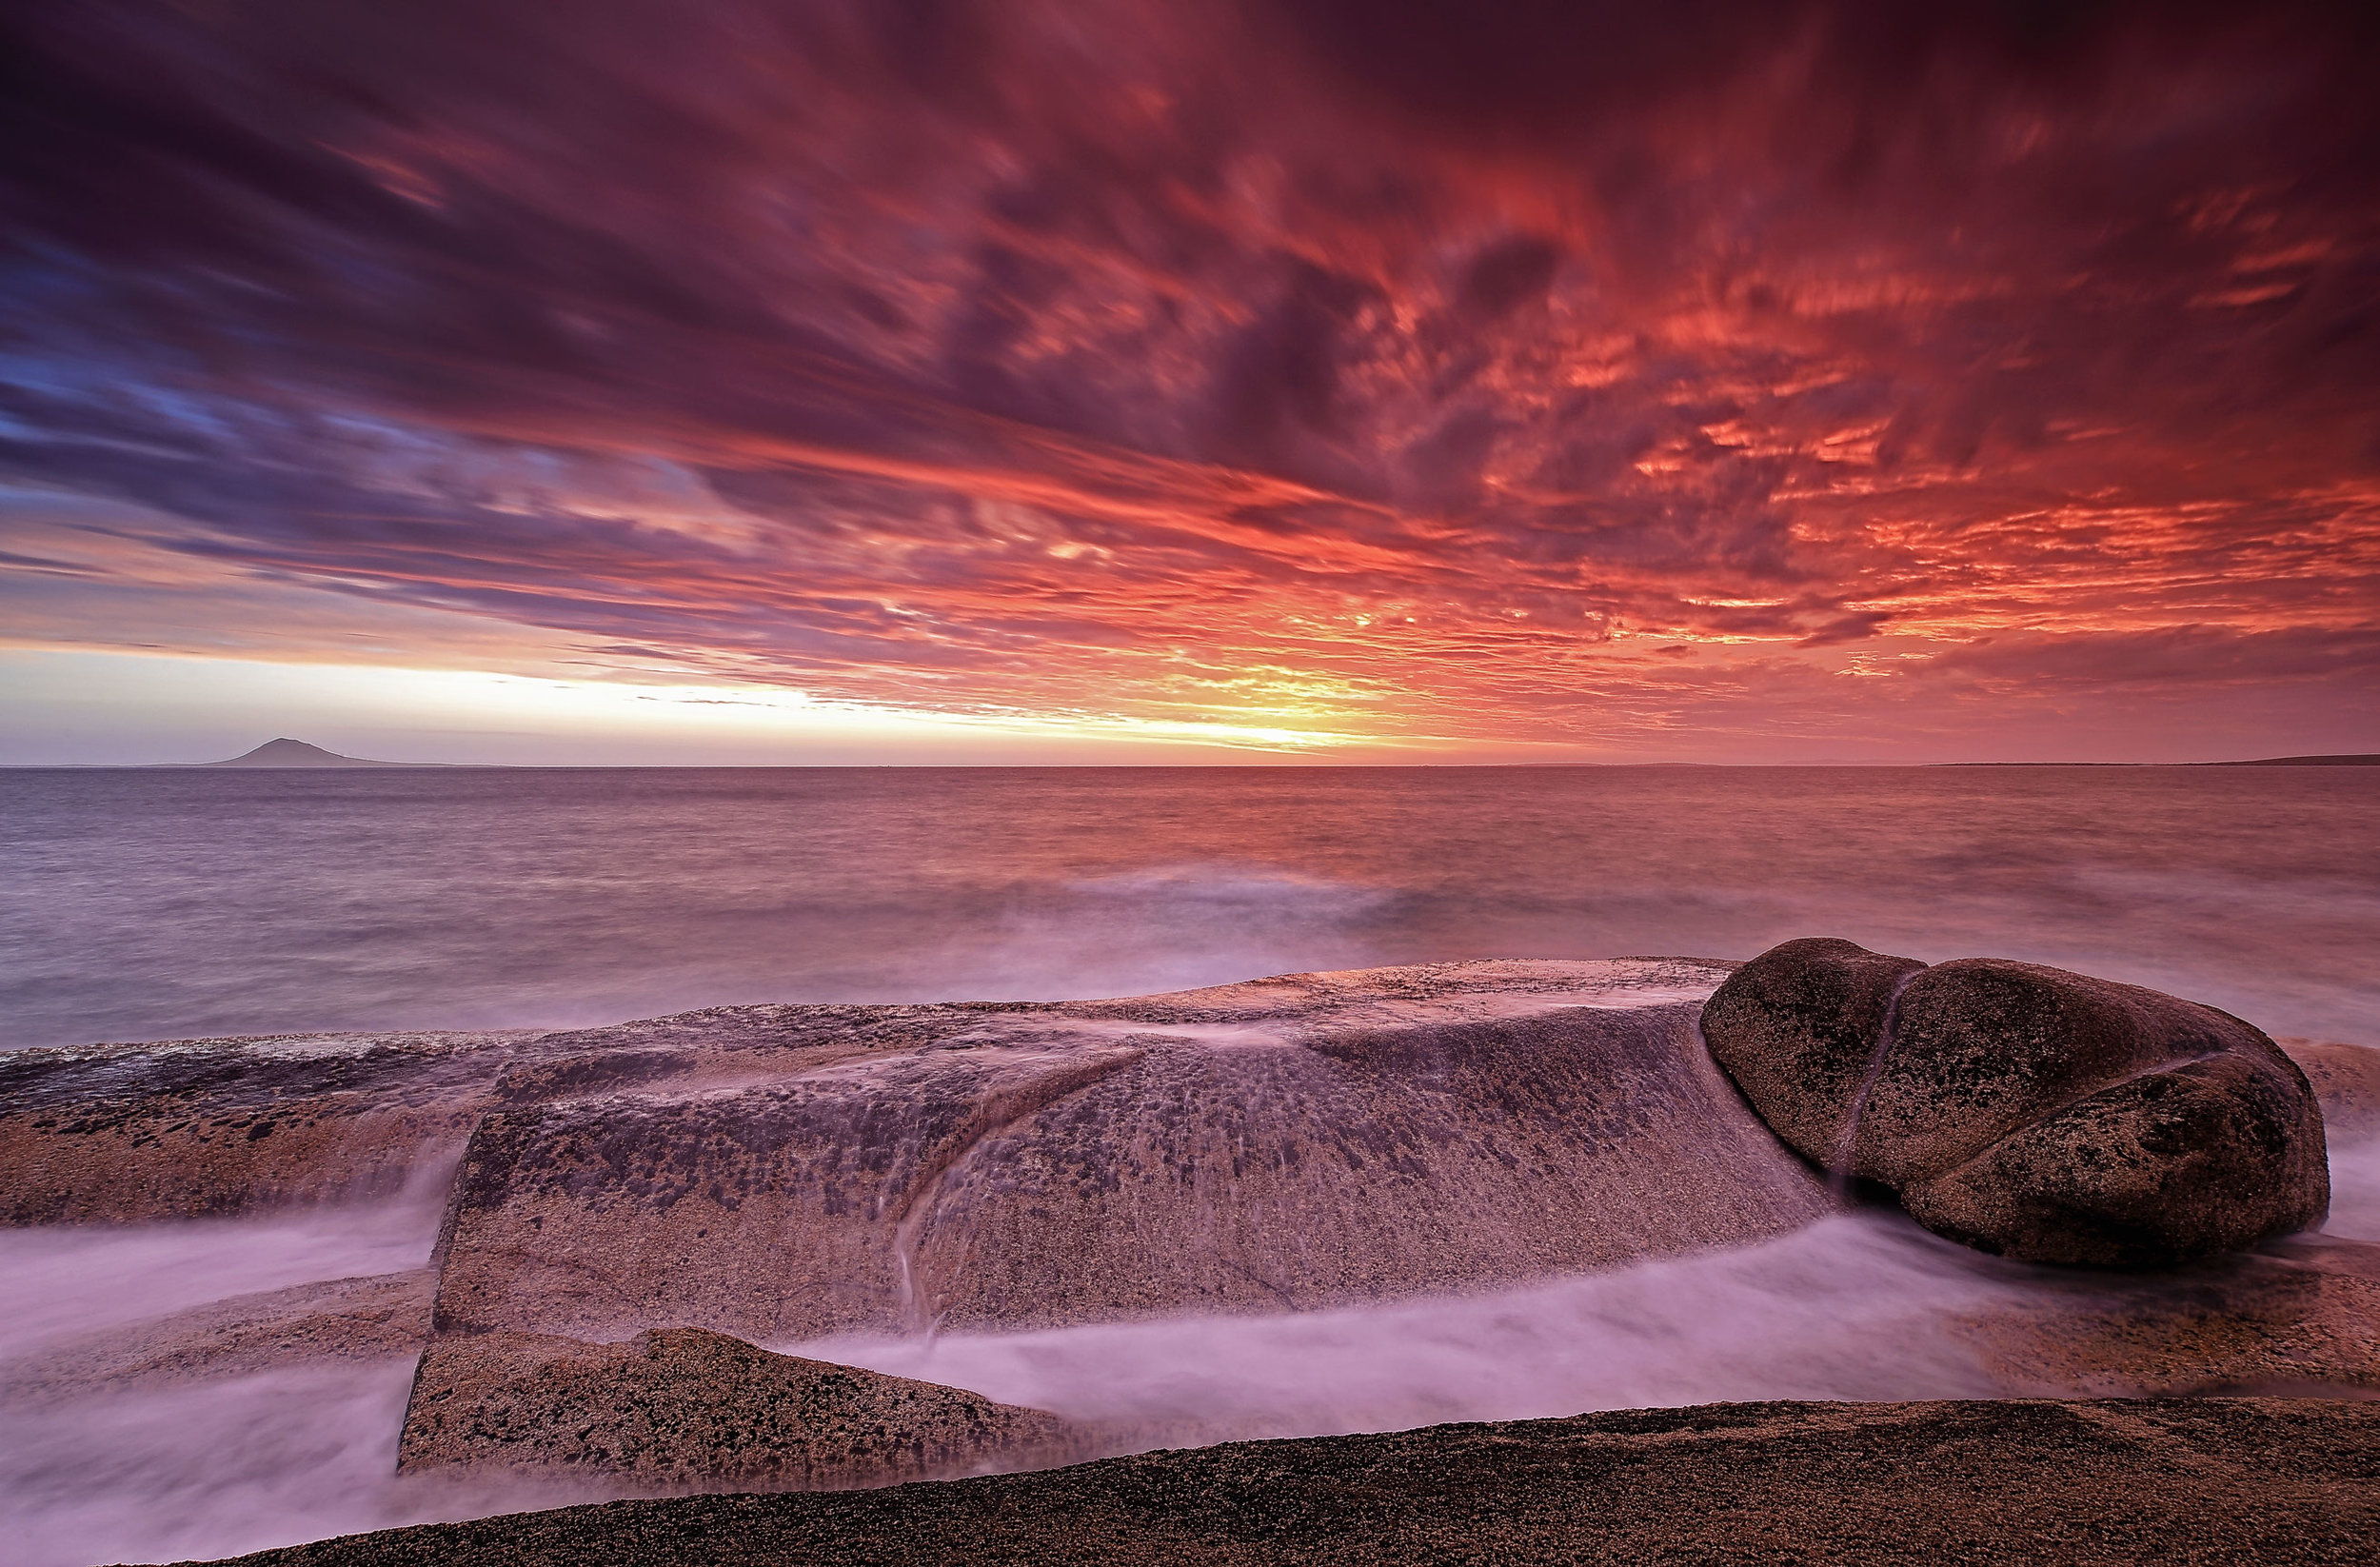 Storm at Sunset, Flinders Island, Tasmania – In 2014 I spent three weeks on Flinders Island as an Artist in Residence. The weather was impeccable, which meant not as many colourful skies as I'd hoped, so this one was particularly special!